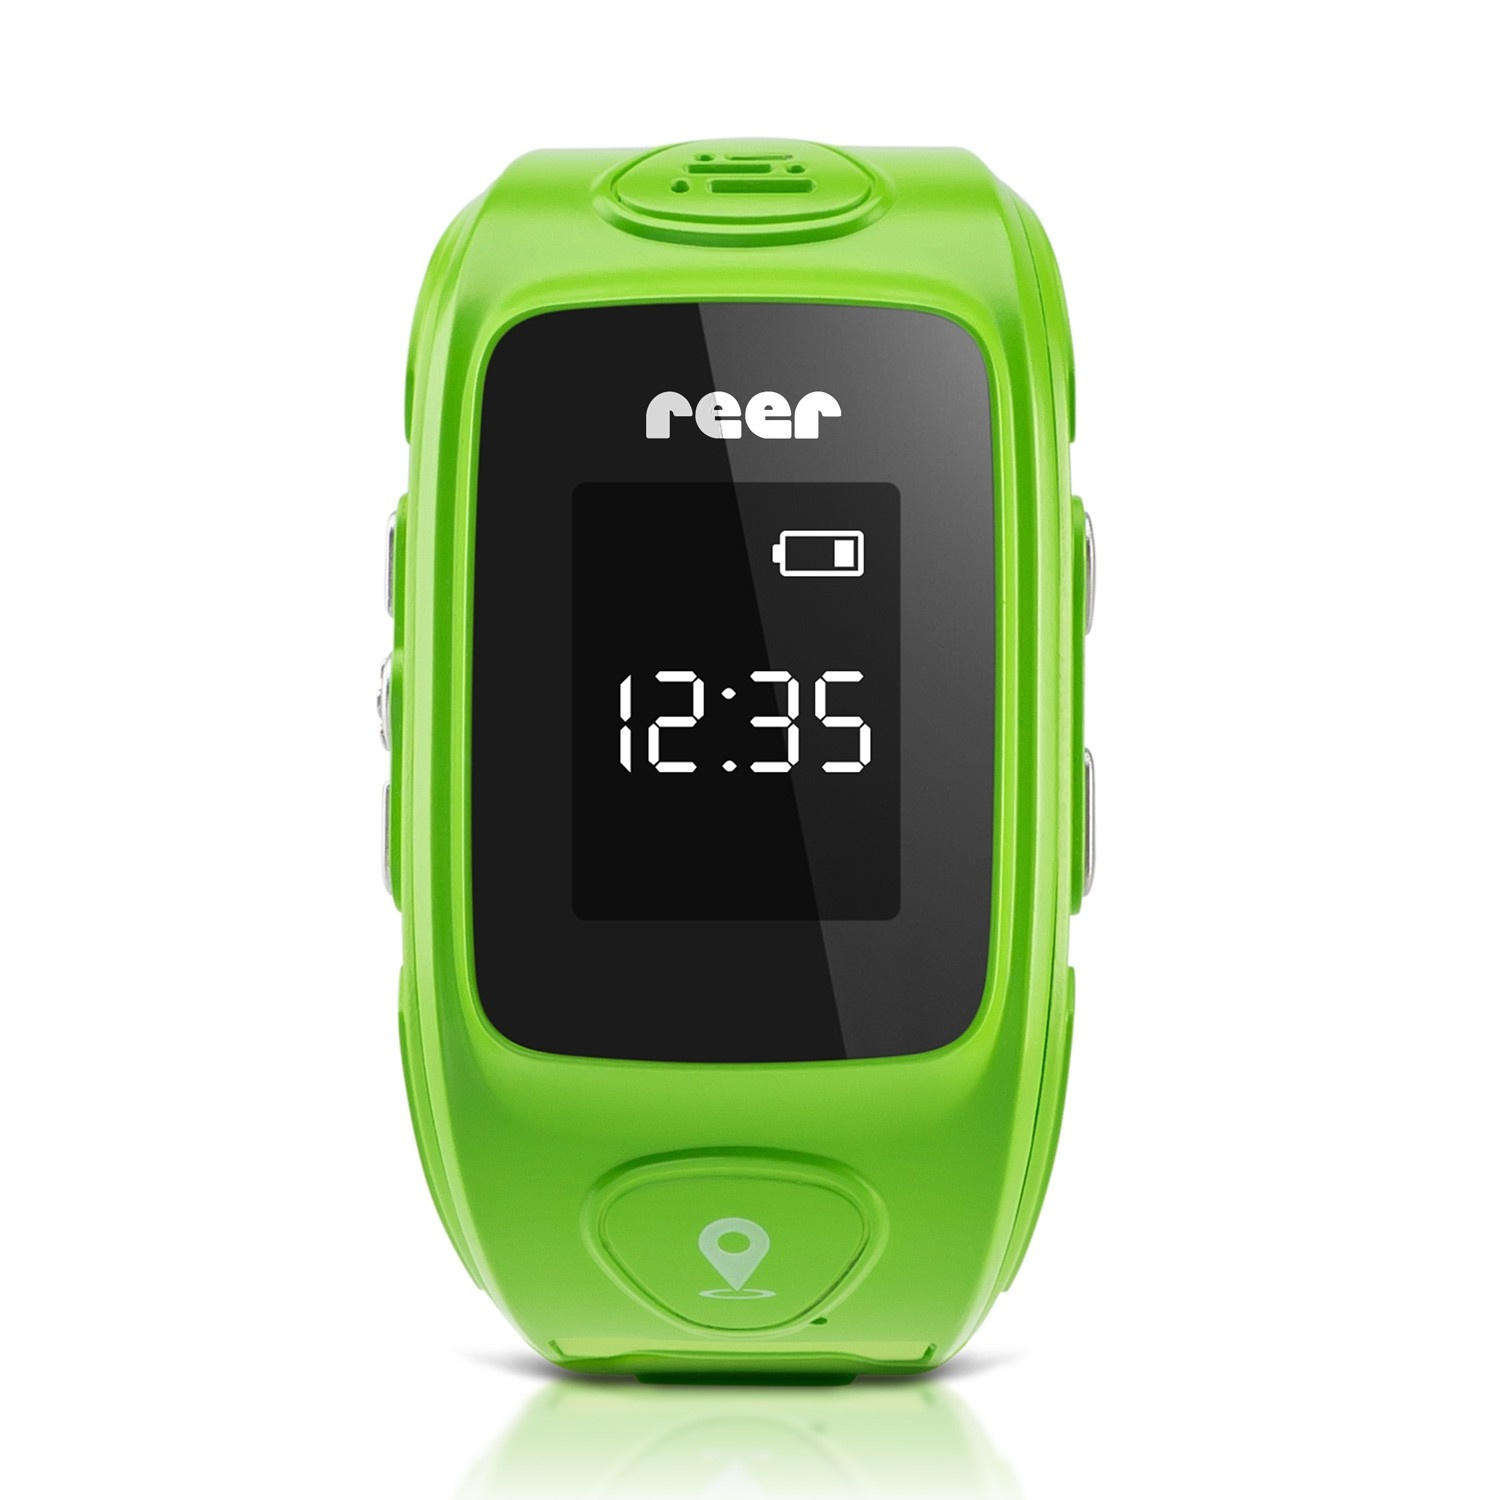 Reer AngelGuard GPS watch with phone